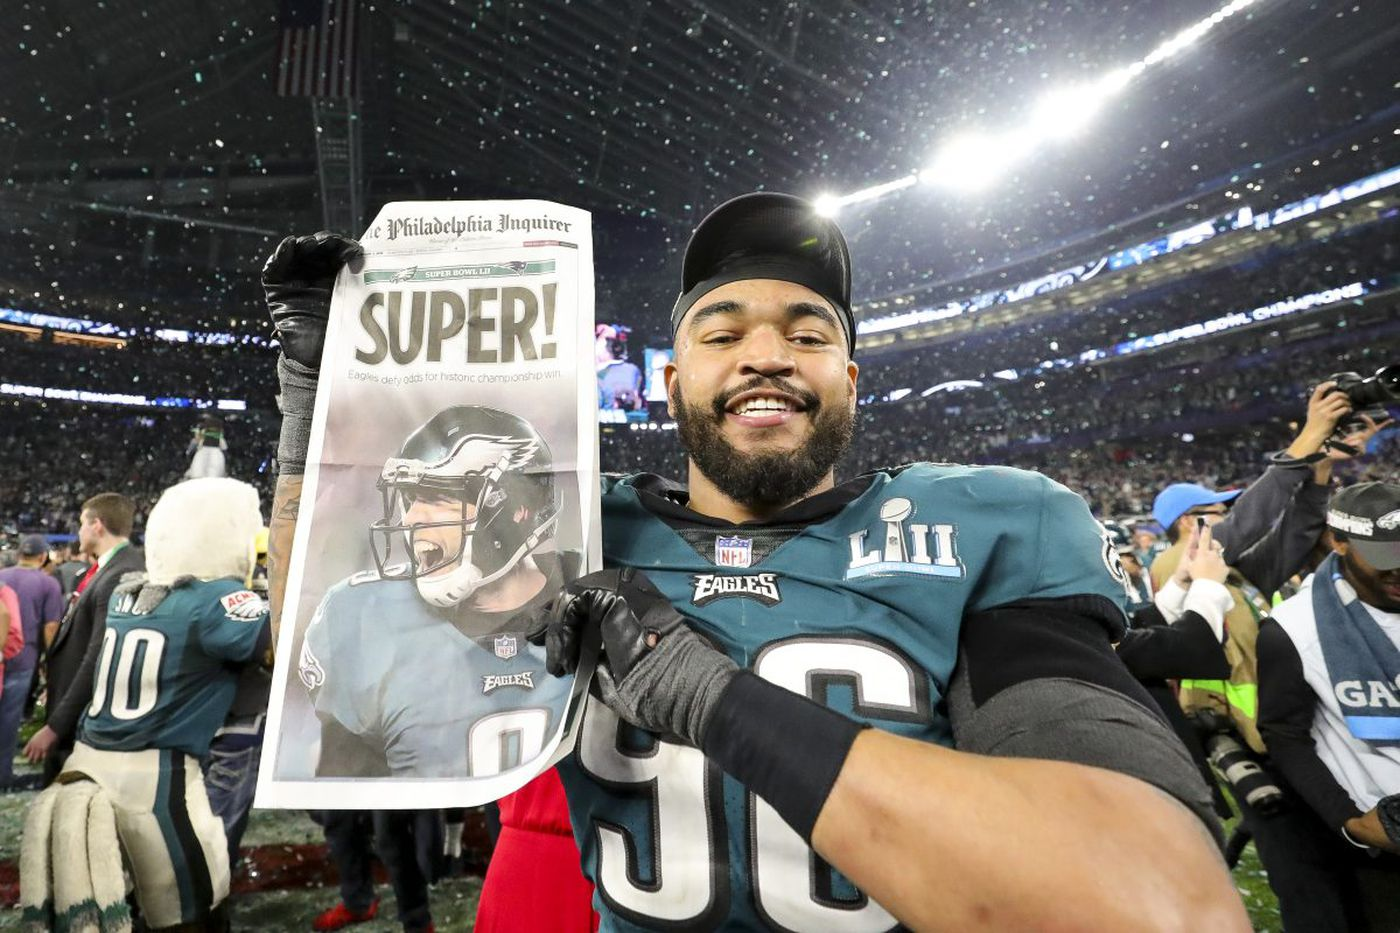 Eagles' Derek Barnett on future after Super Bowl: 'The sky's the limit' | Marcus Hayes